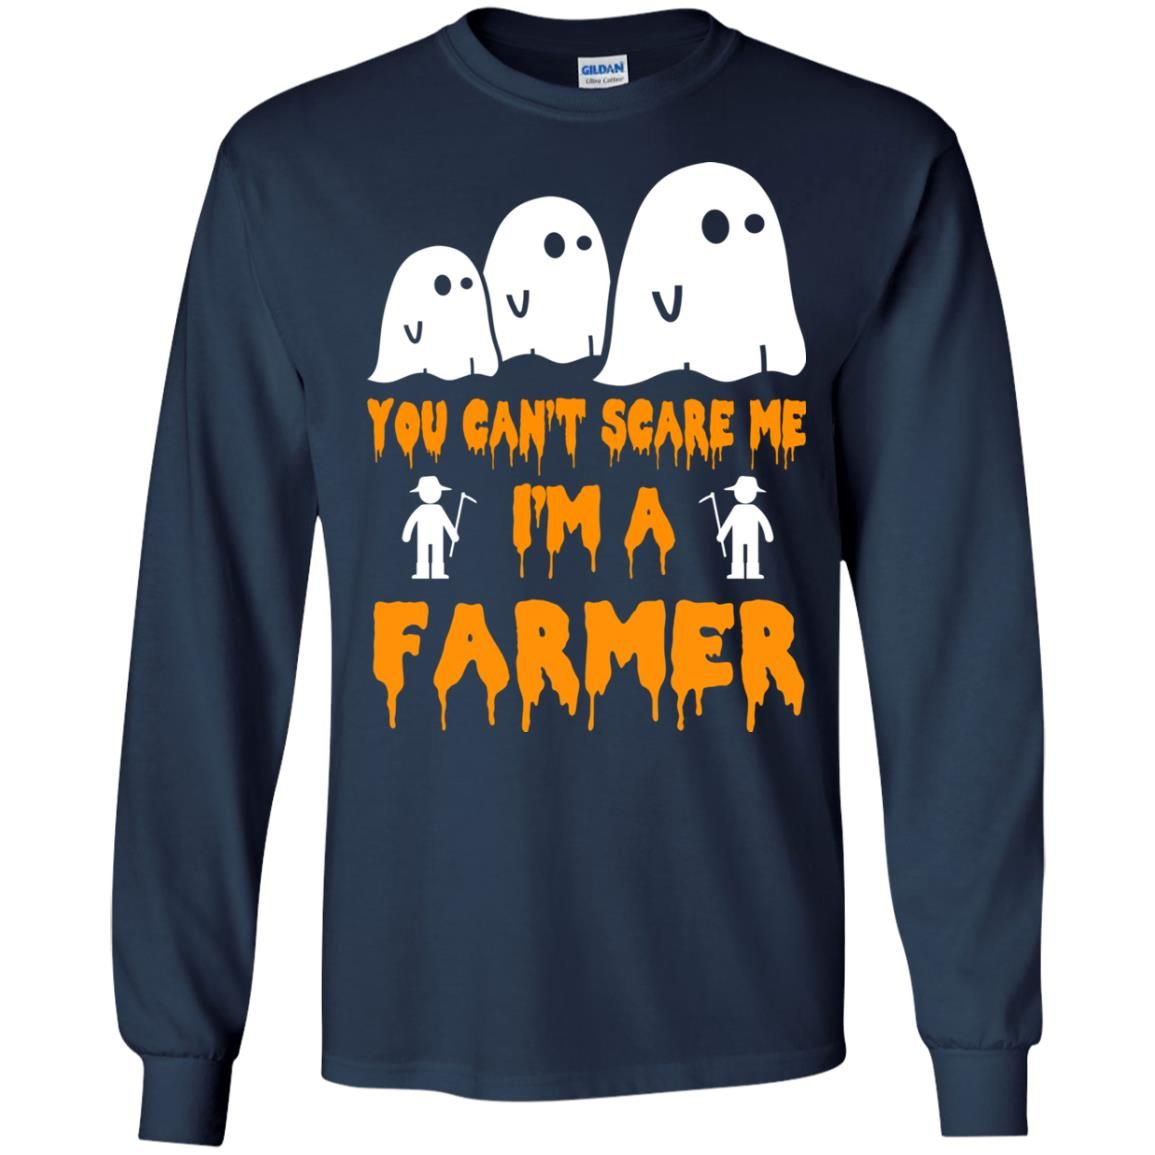 image 414 - You can't scare me I'm a Farmer shirt, hoodie, tank